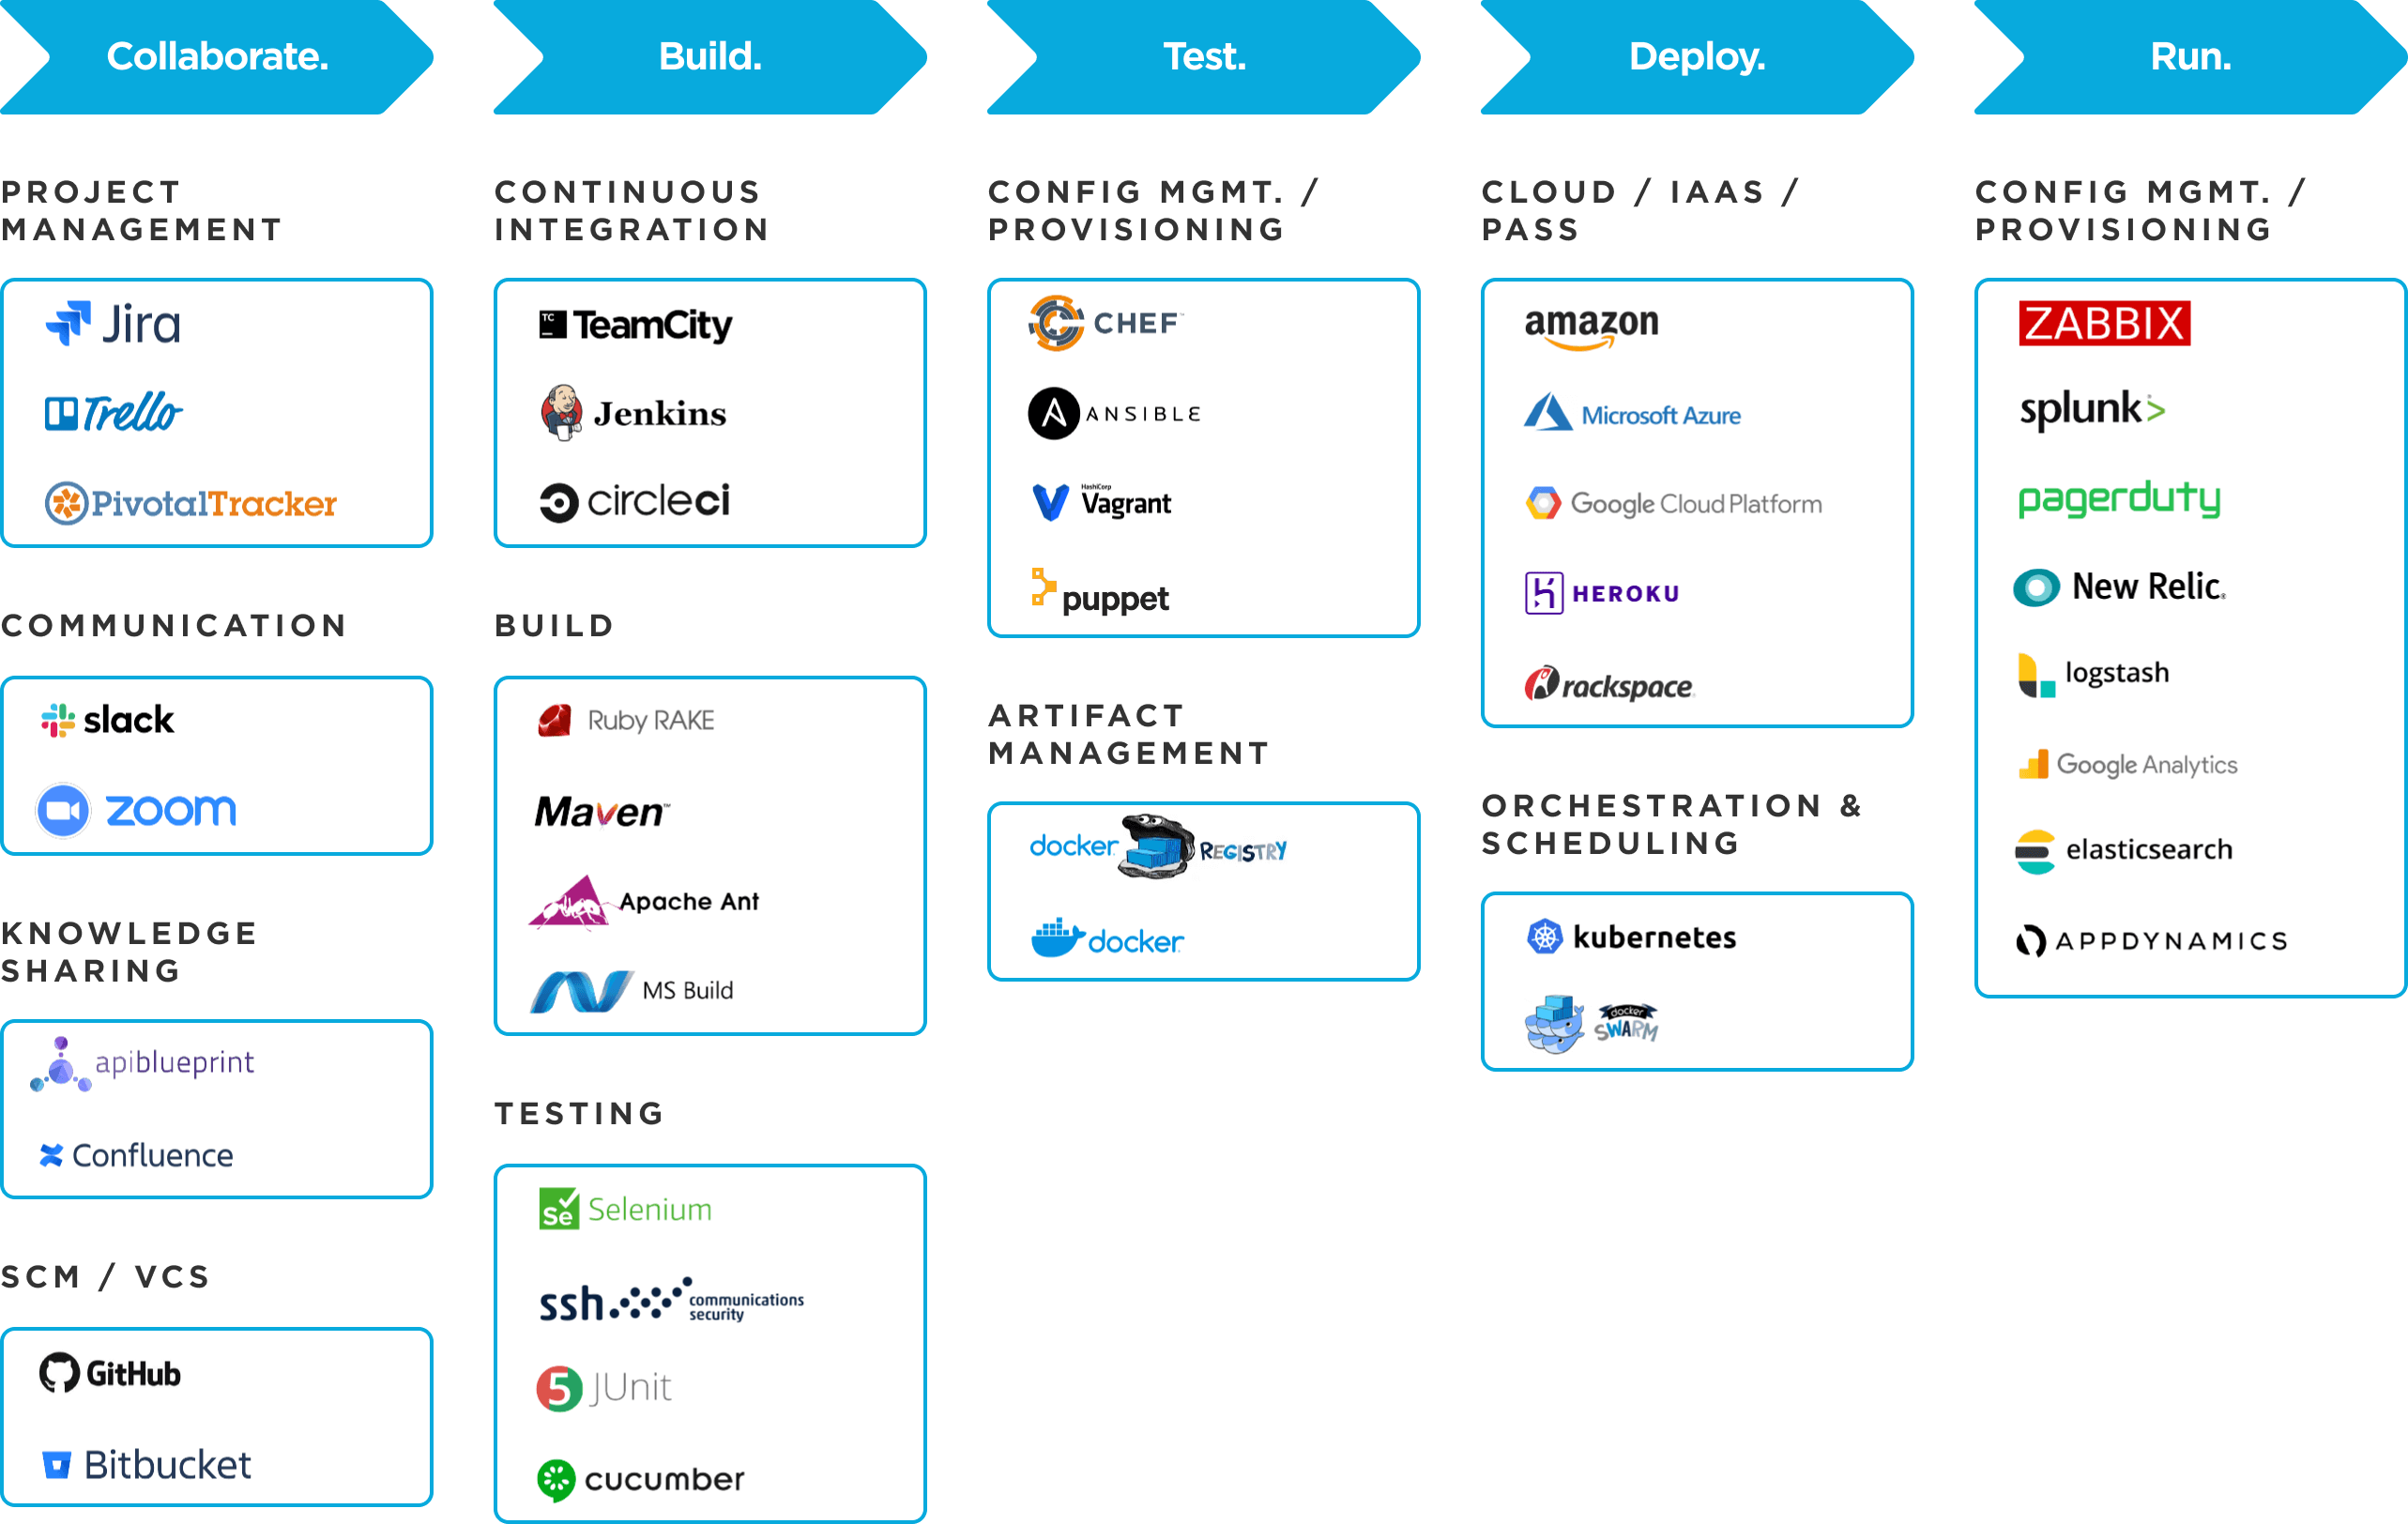 Our DevOps toolchain